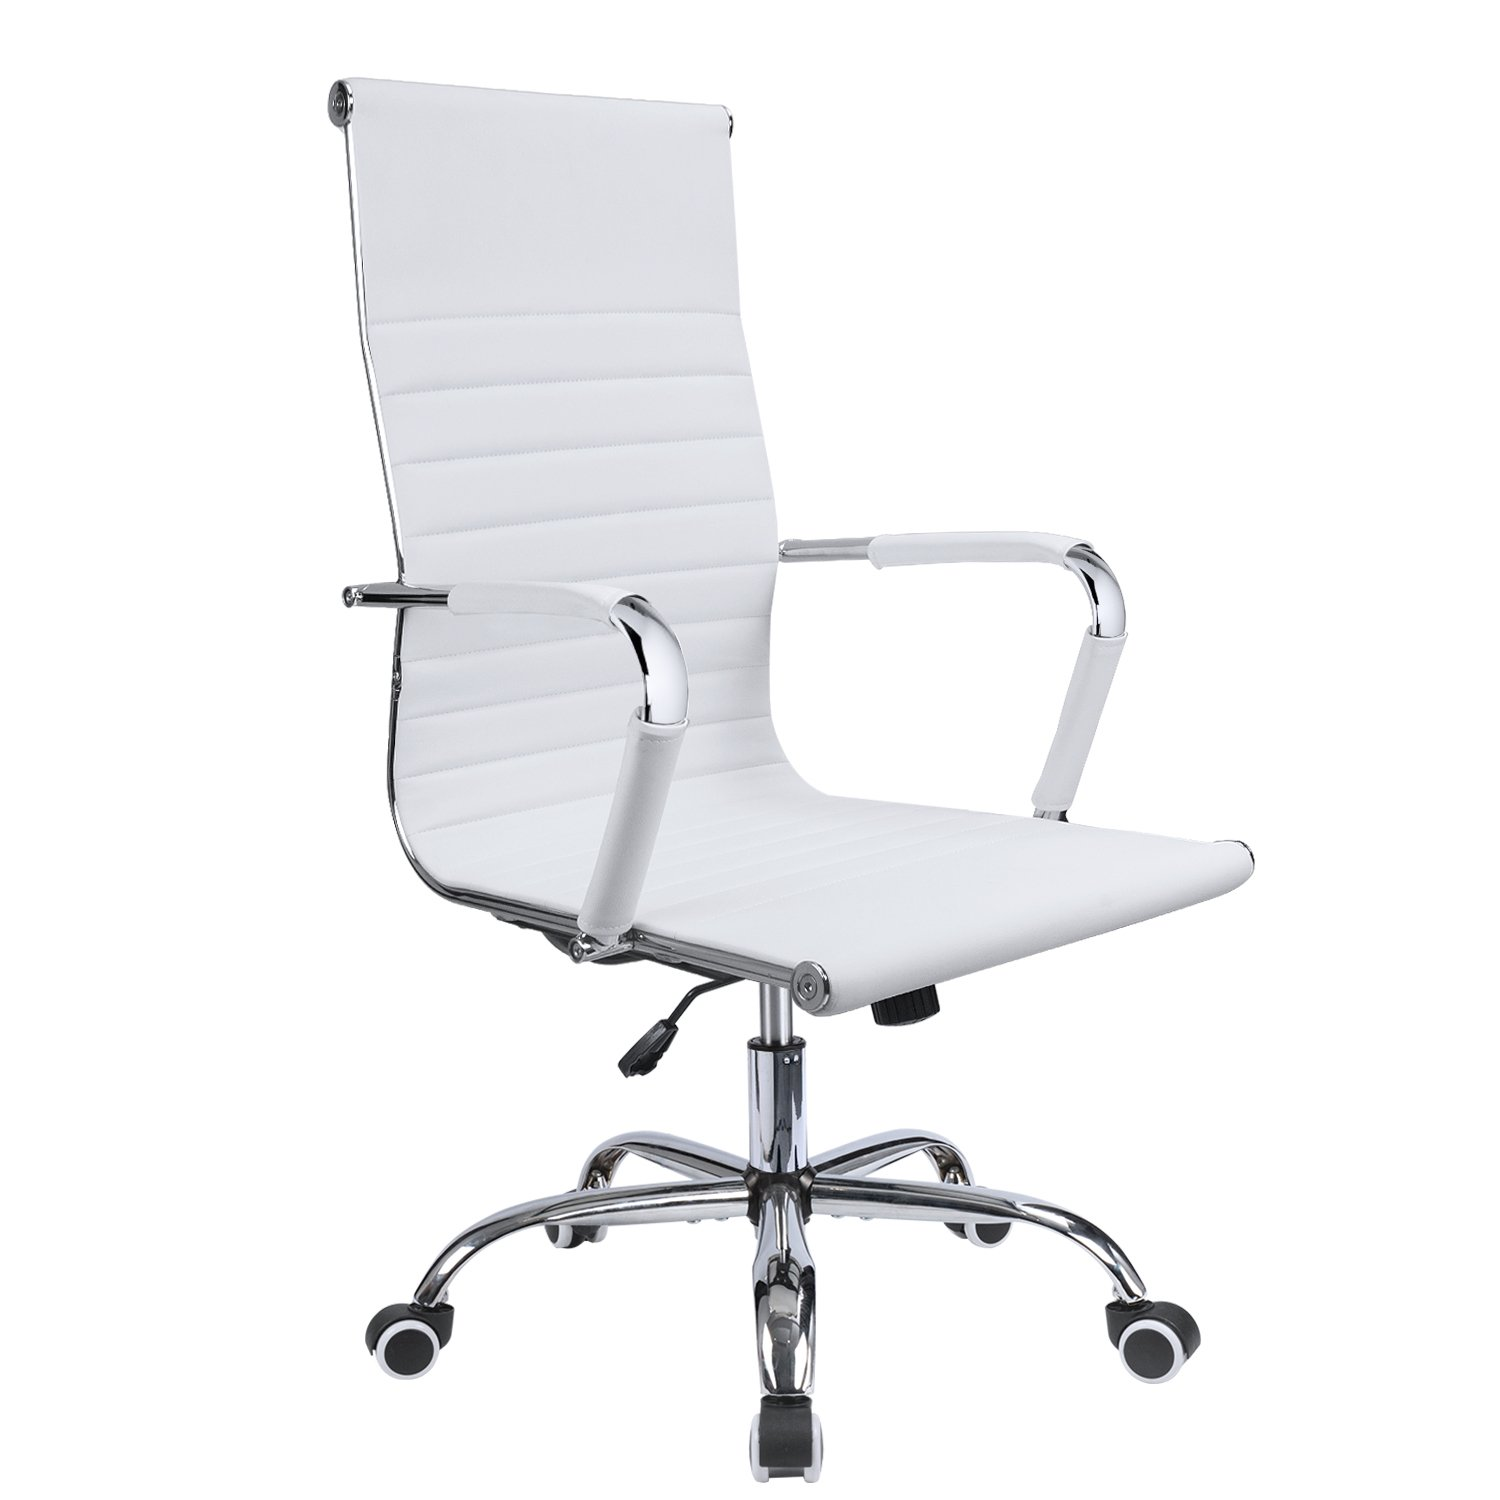 Devoko Office Desk Chair Mid Back Leather Height Adjustable Swivel Ribbed Chairs Ergonomic Executive Conference Task Chair with Arms (White) by Devoko